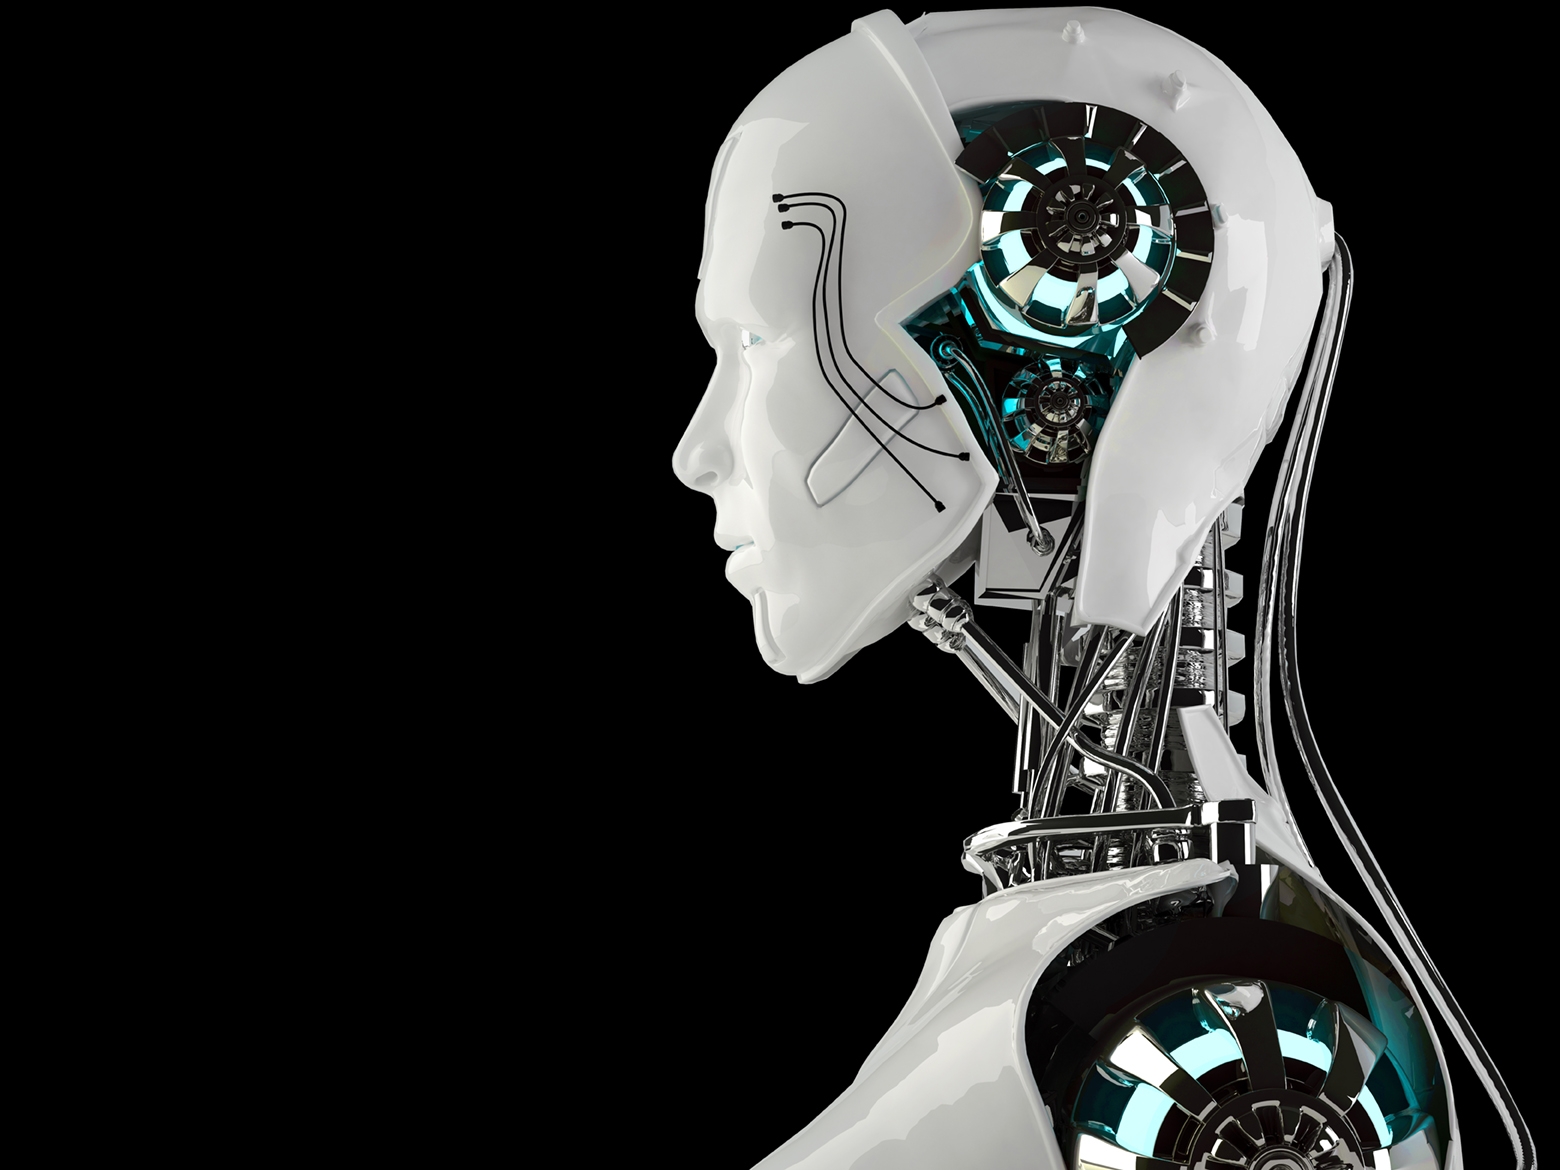 VIDEO - Il nostro futuro nell'era dell'Intelligenza Artificiale